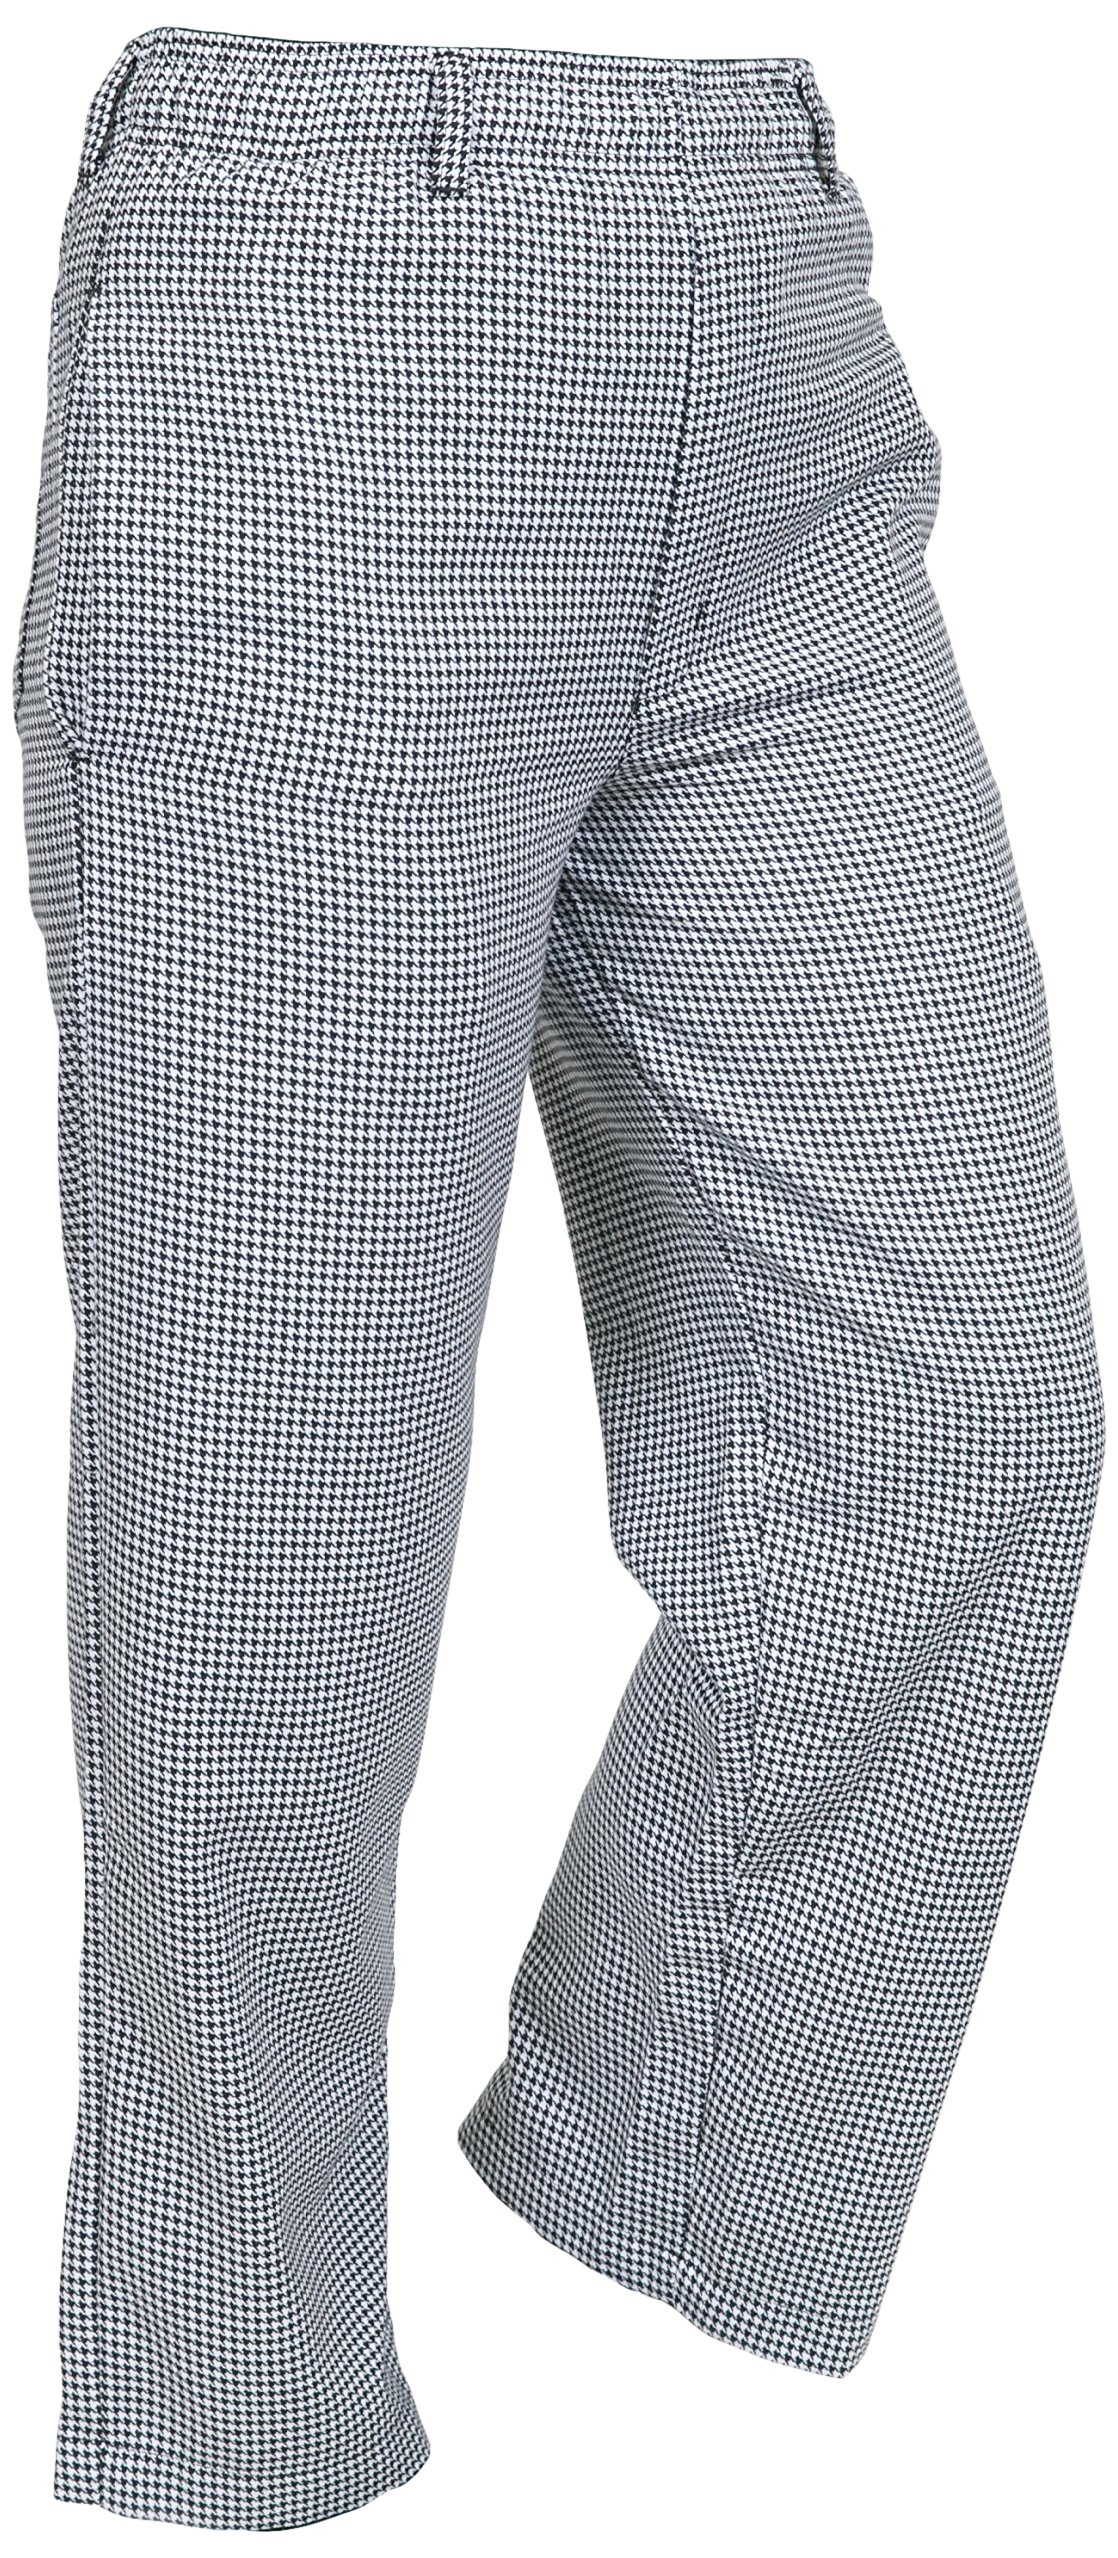 Mercer Culinary M60030HT6X Millennia Men's Cook's Pants, 6X-Large, Black and White Hounds Tooth by Mercer Culinary